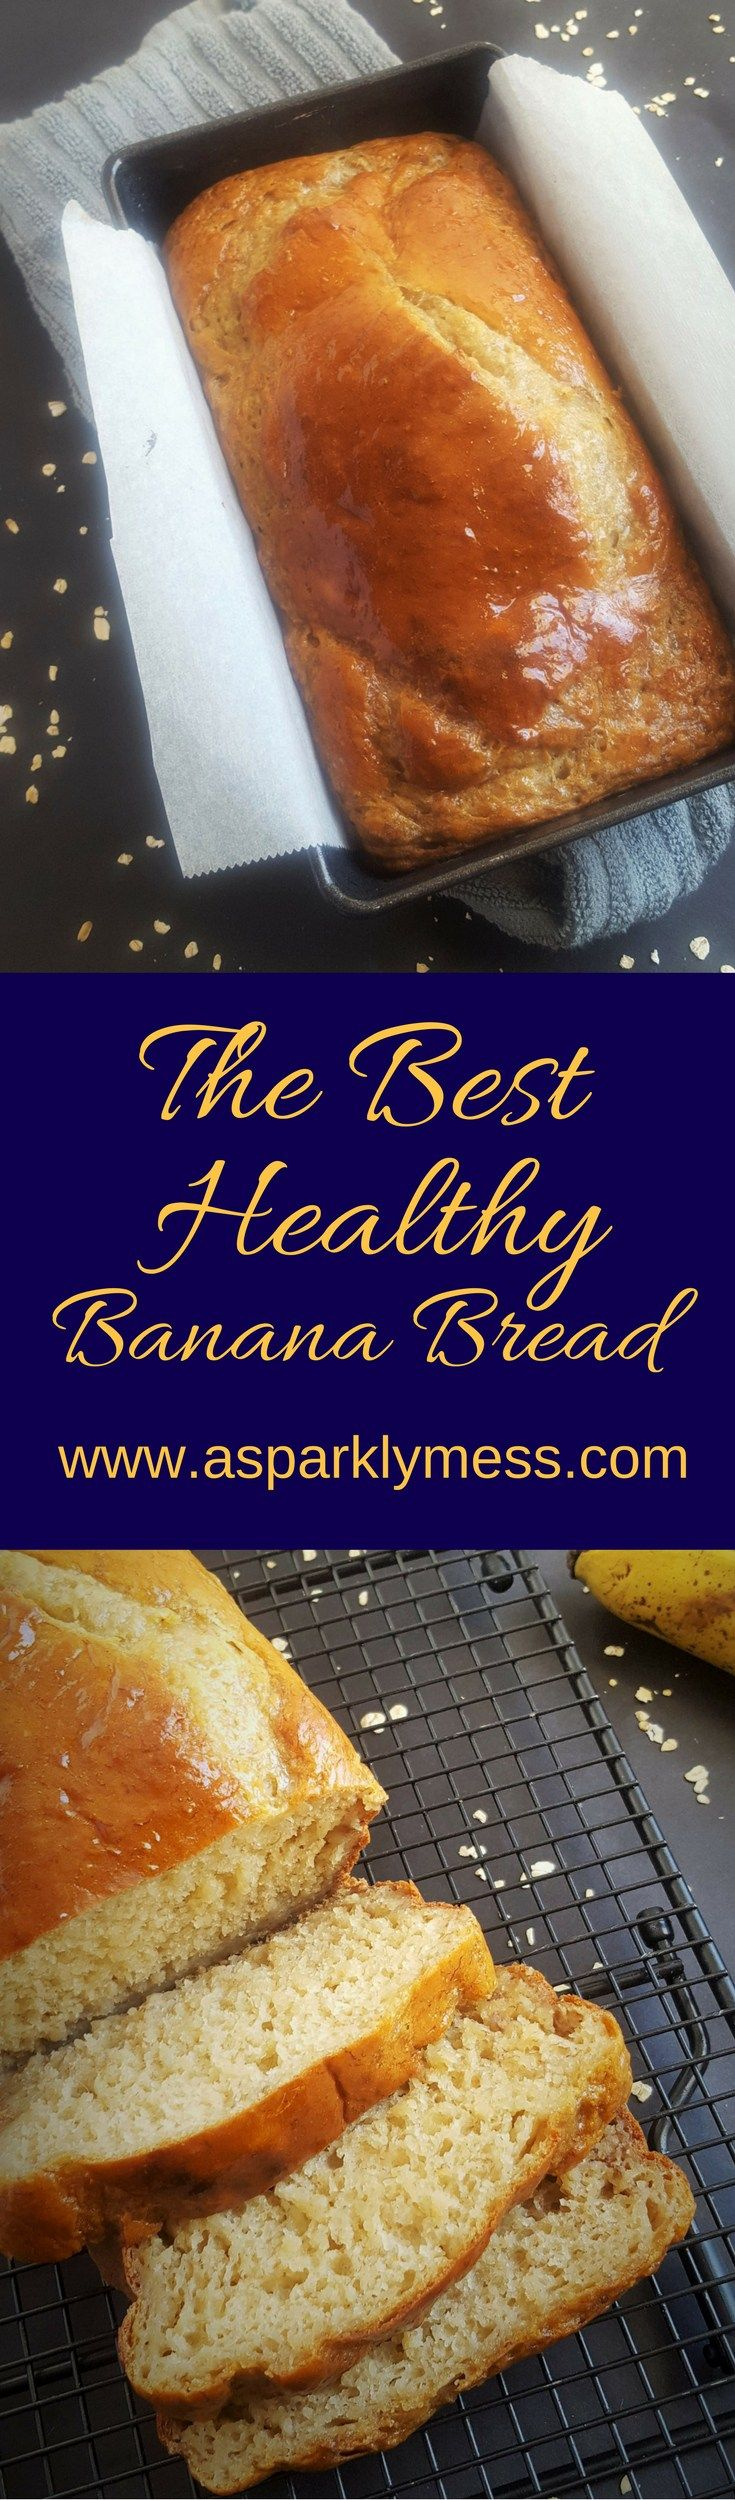 Quick and Easy Healthy Banana Bread, No sugar, no oil and made in one bowl for easy clean up. This is it people! This is my most delicious Healthy Banana Bread recipe. Regular banana bread recipes are packed with lots of butter, oil, sugar, and white flour making them delicious, but not the healthiest option. Well...